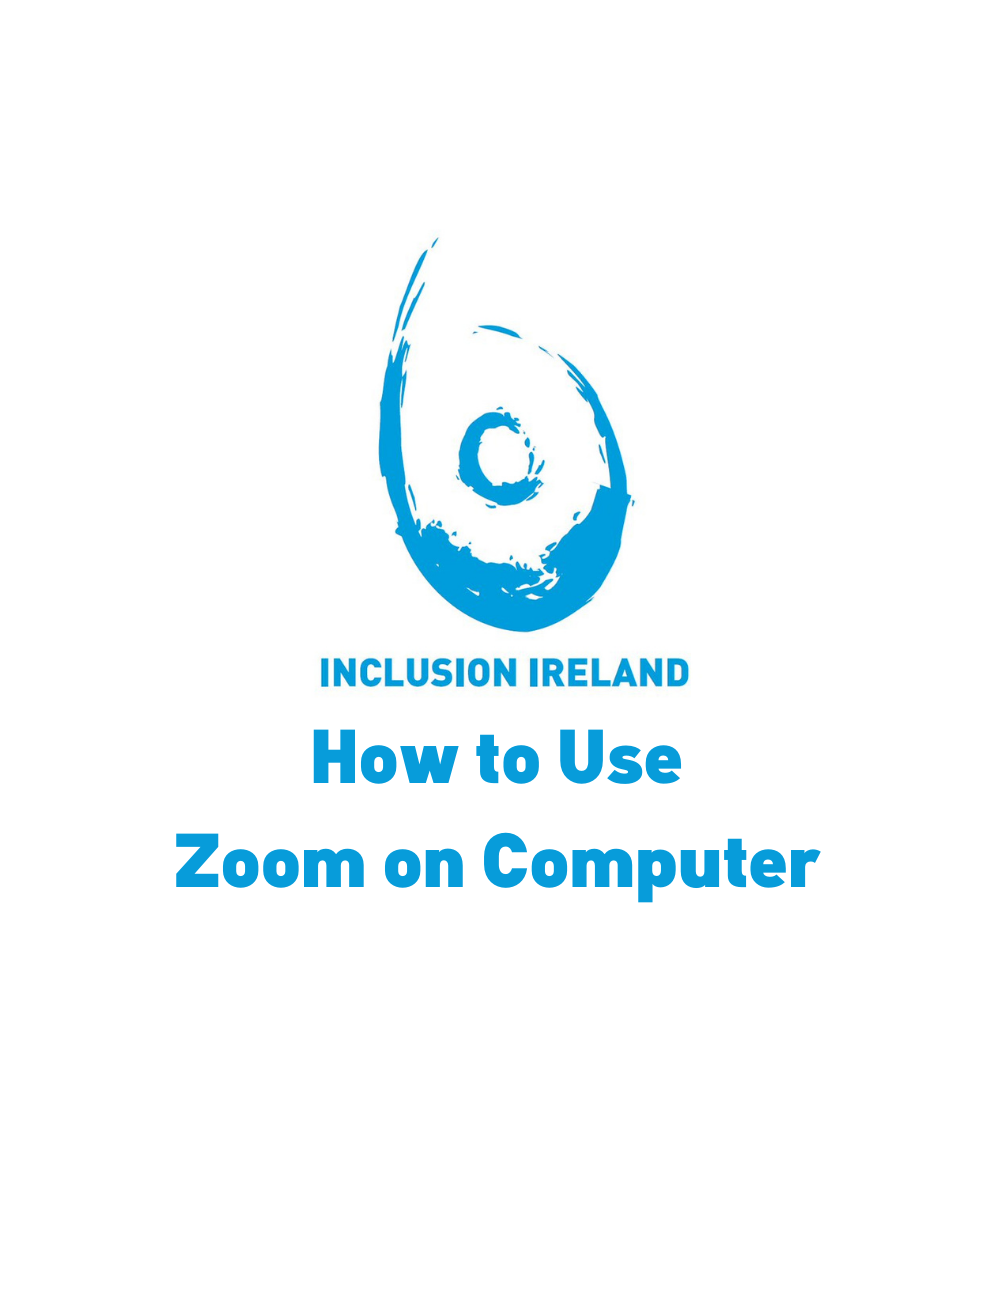 ETR – How to Use Zoom on Computer